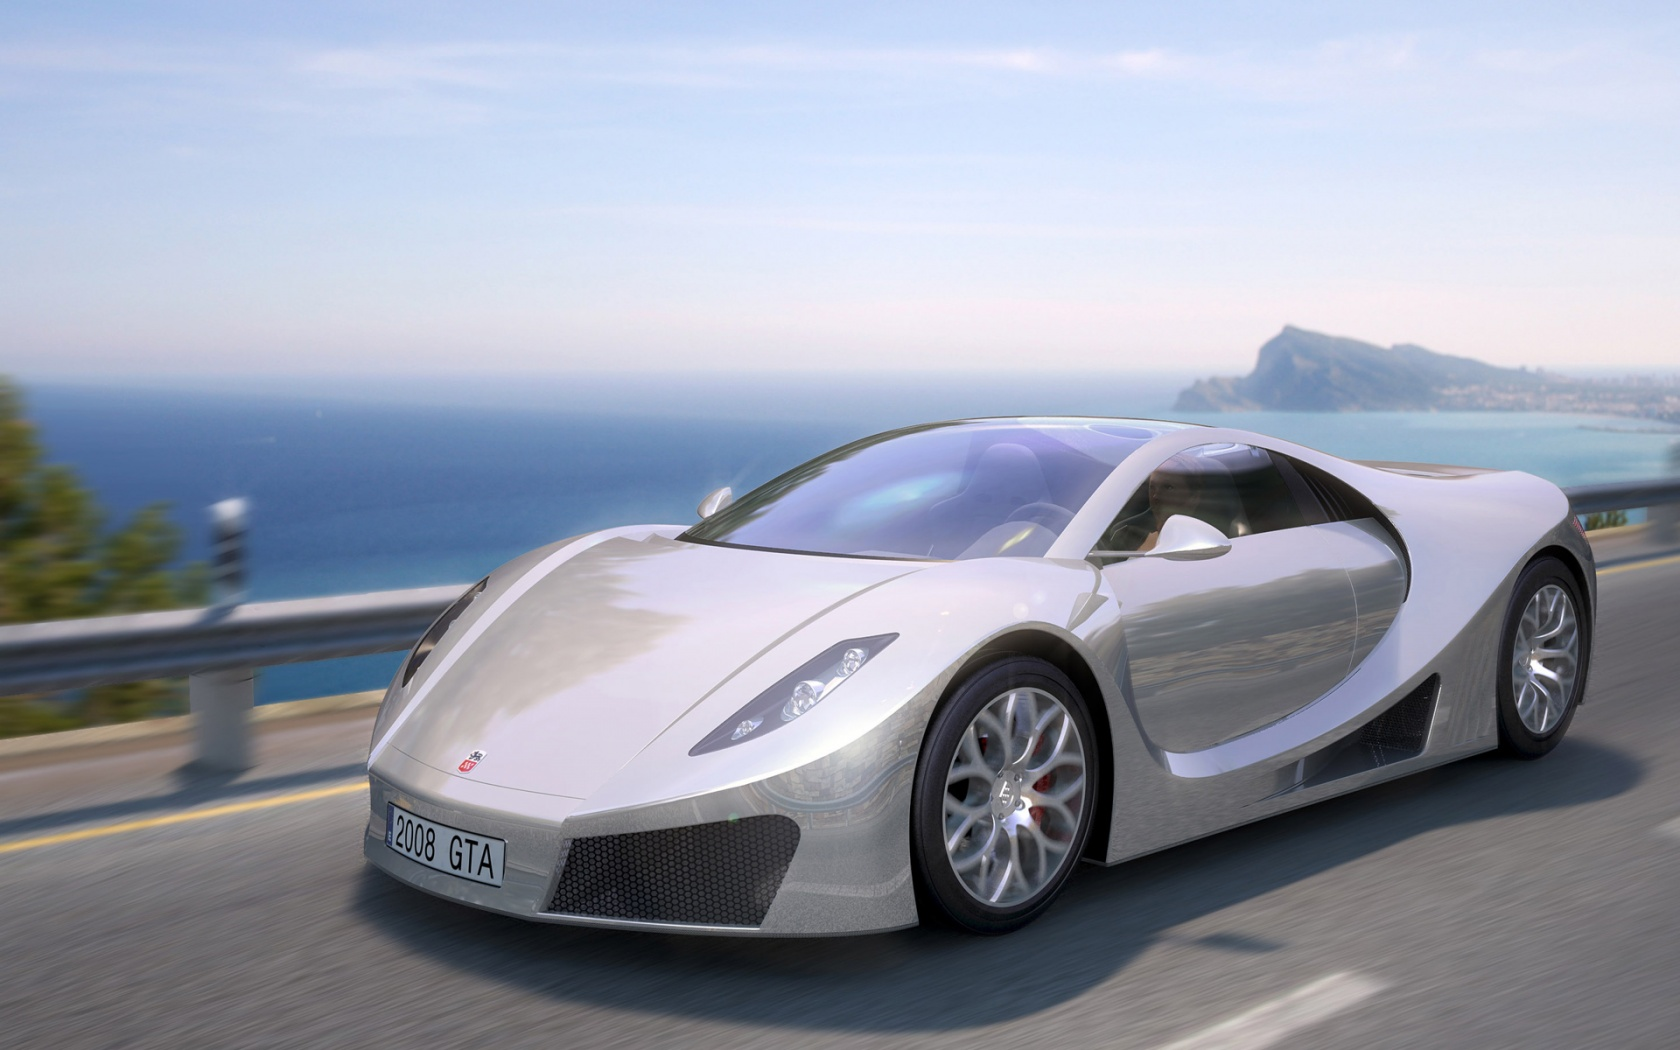 Wonderful GTA Concept Super Sport Car 3 Wallpapers